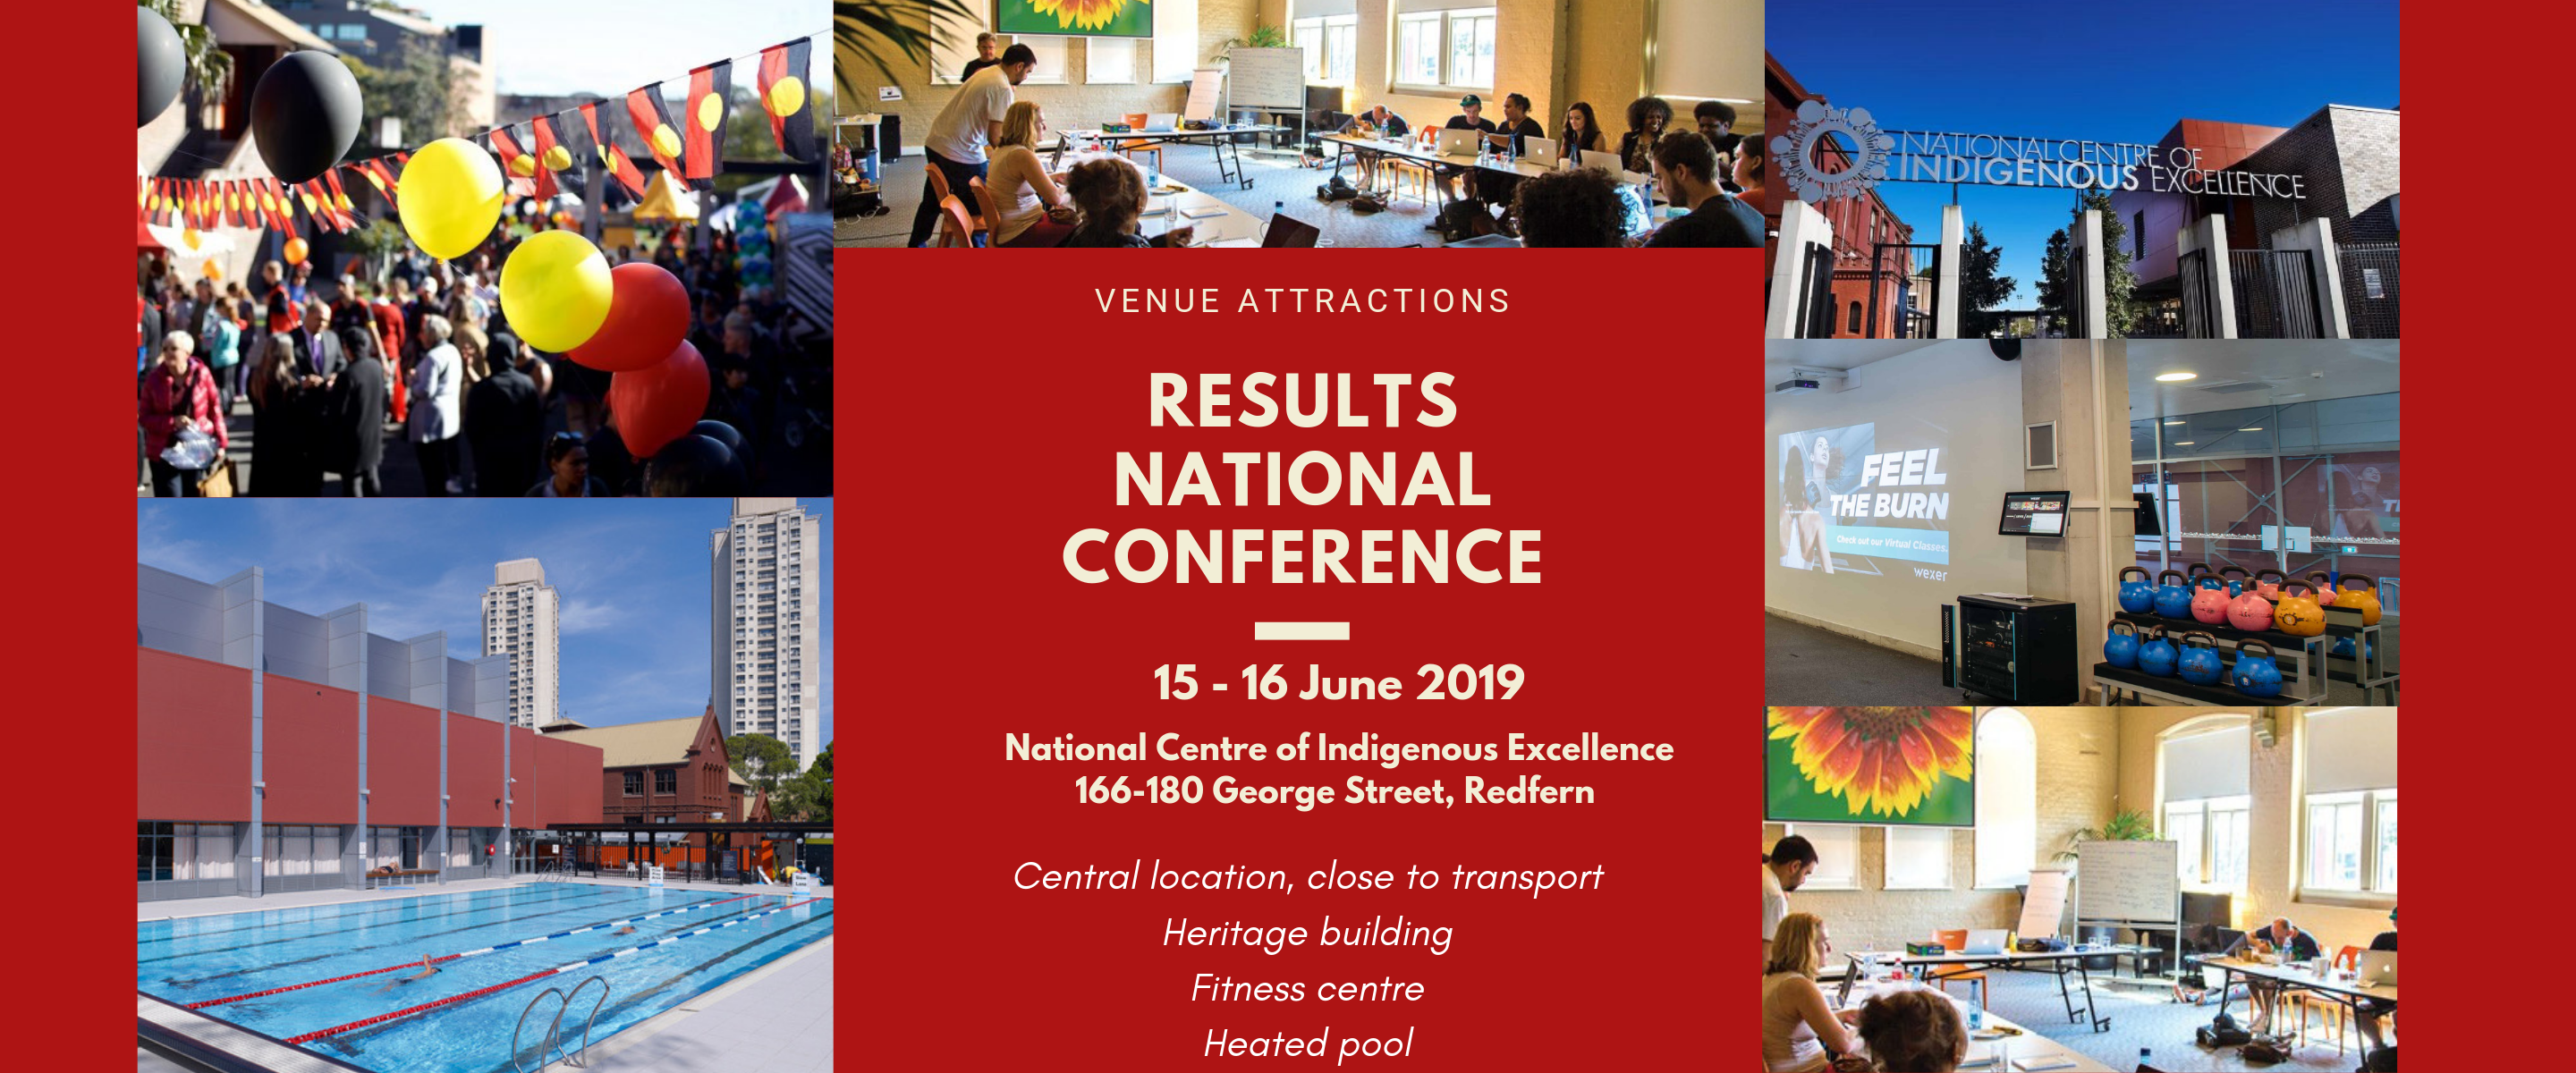 RESULTS 2019 National Conference, NCIE Venue